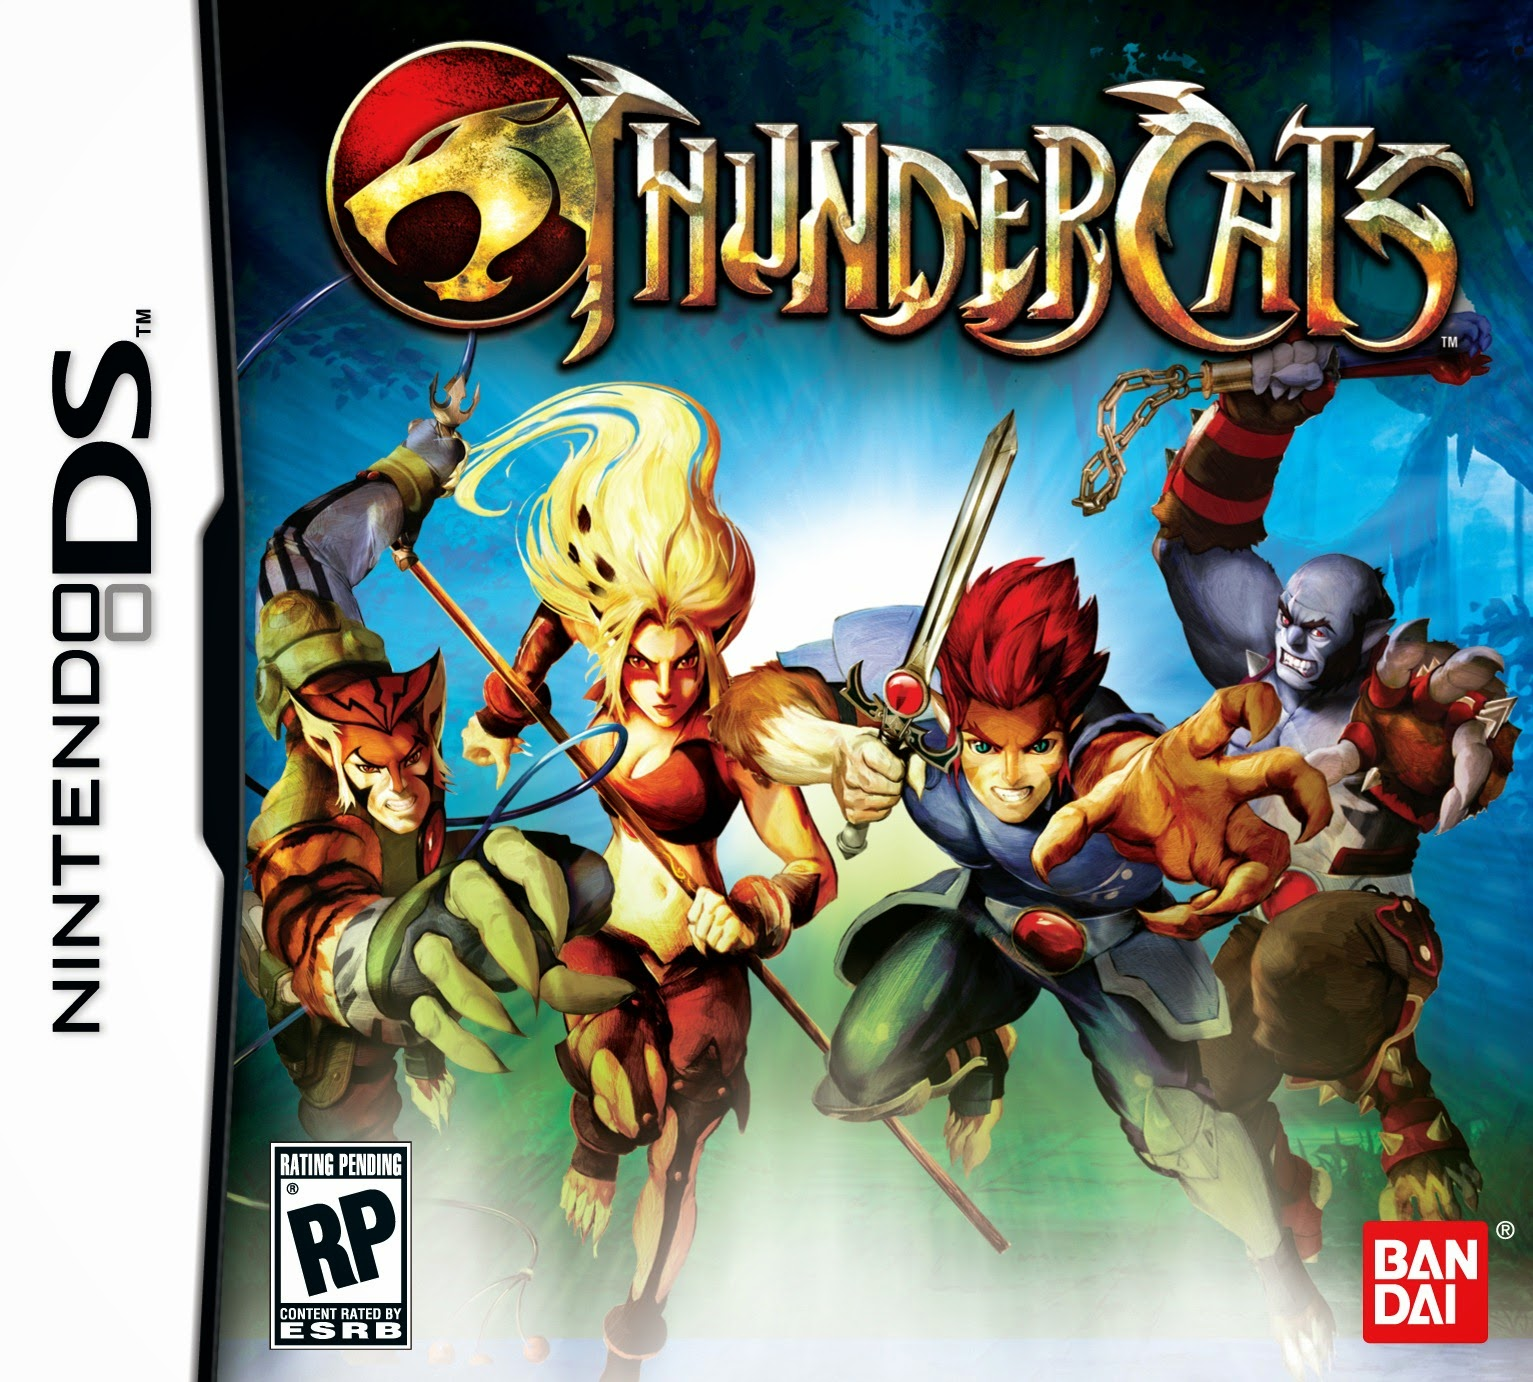 ThunderCats game nds rom cover download free descargar gratis